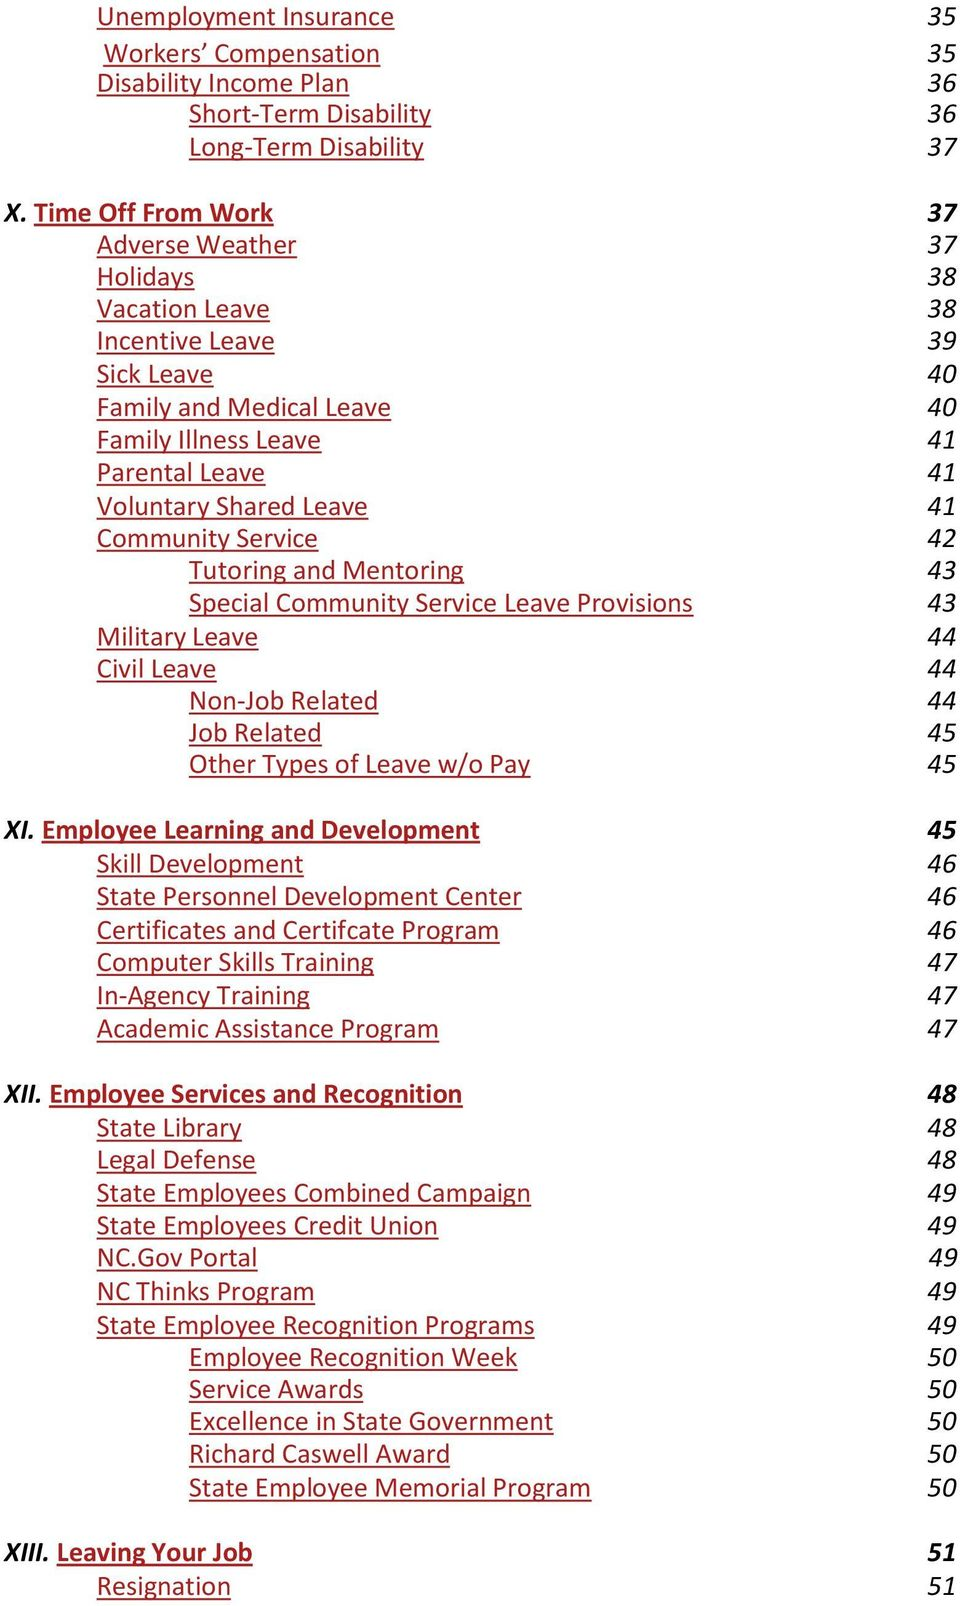 Community Service 42 Tutoring and Mentoring 43 Special Community Service Leave Provisions 43 Military Leave 44 Civil Leave 44 Non-Job Related 44 Job Related 45 Other Types of Leave w/o Pay 45 XI.